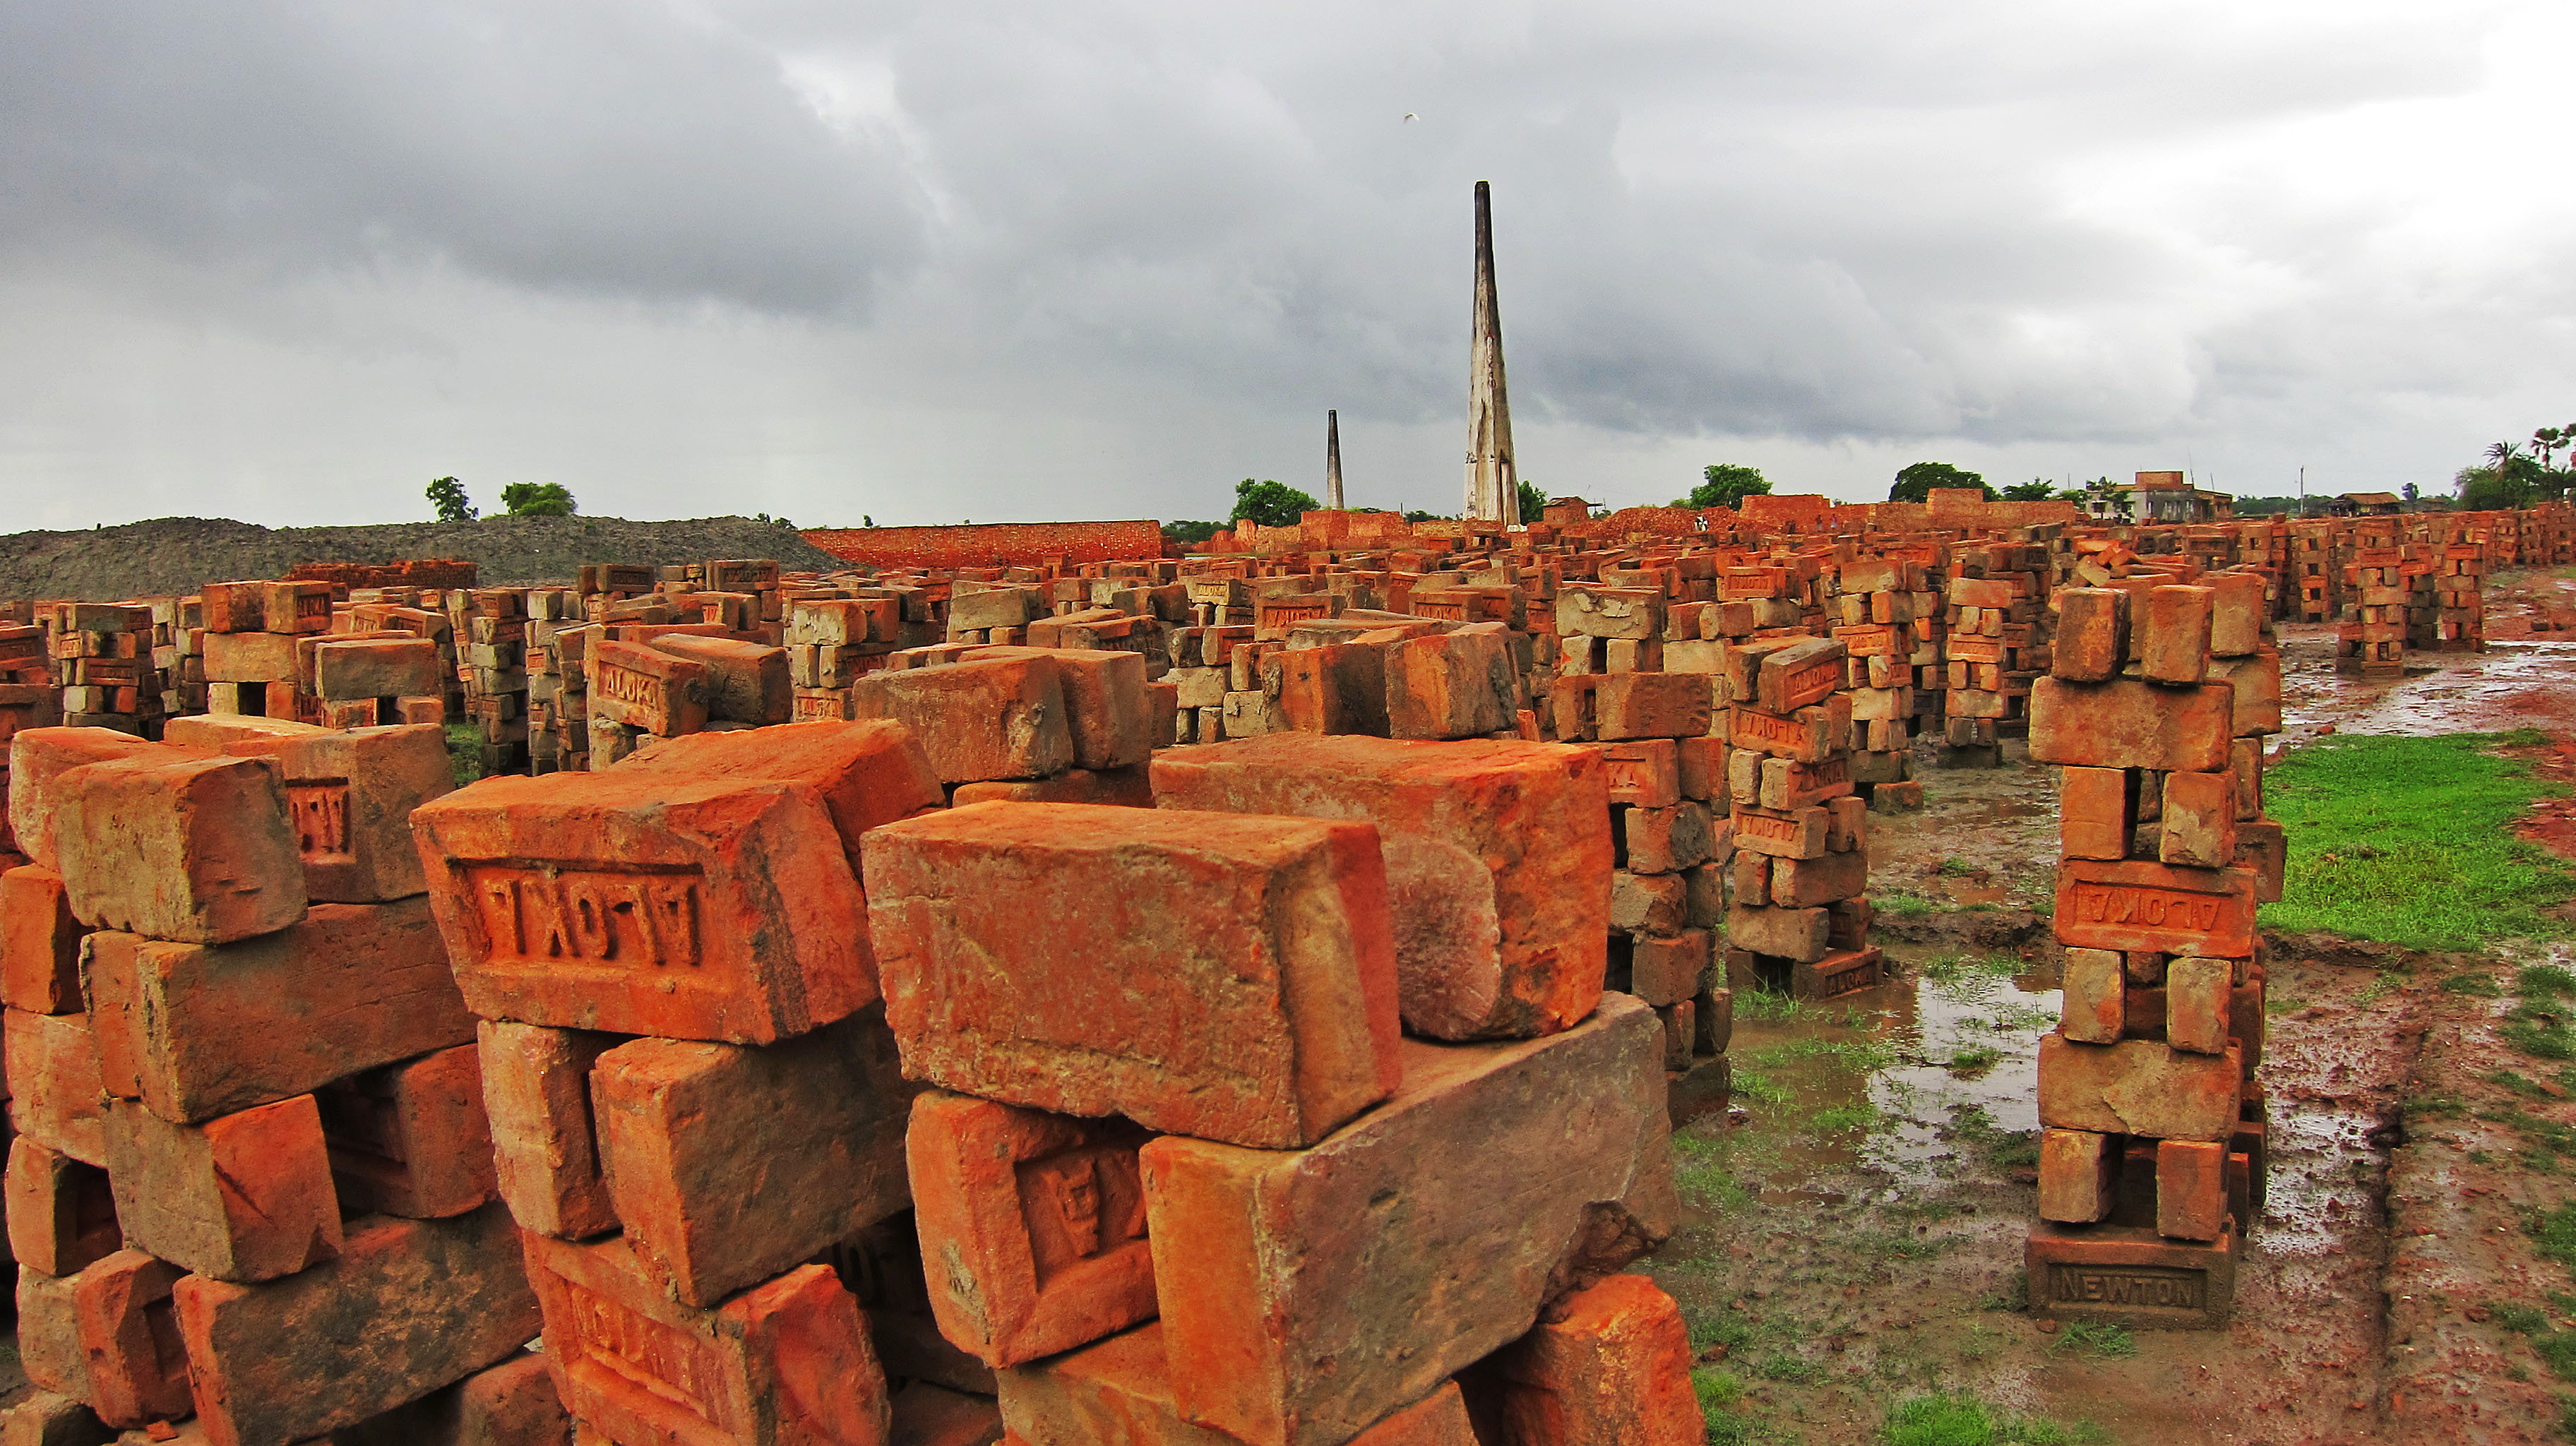 25 new model of brick-kiln to start working across Punjab by end of Oct